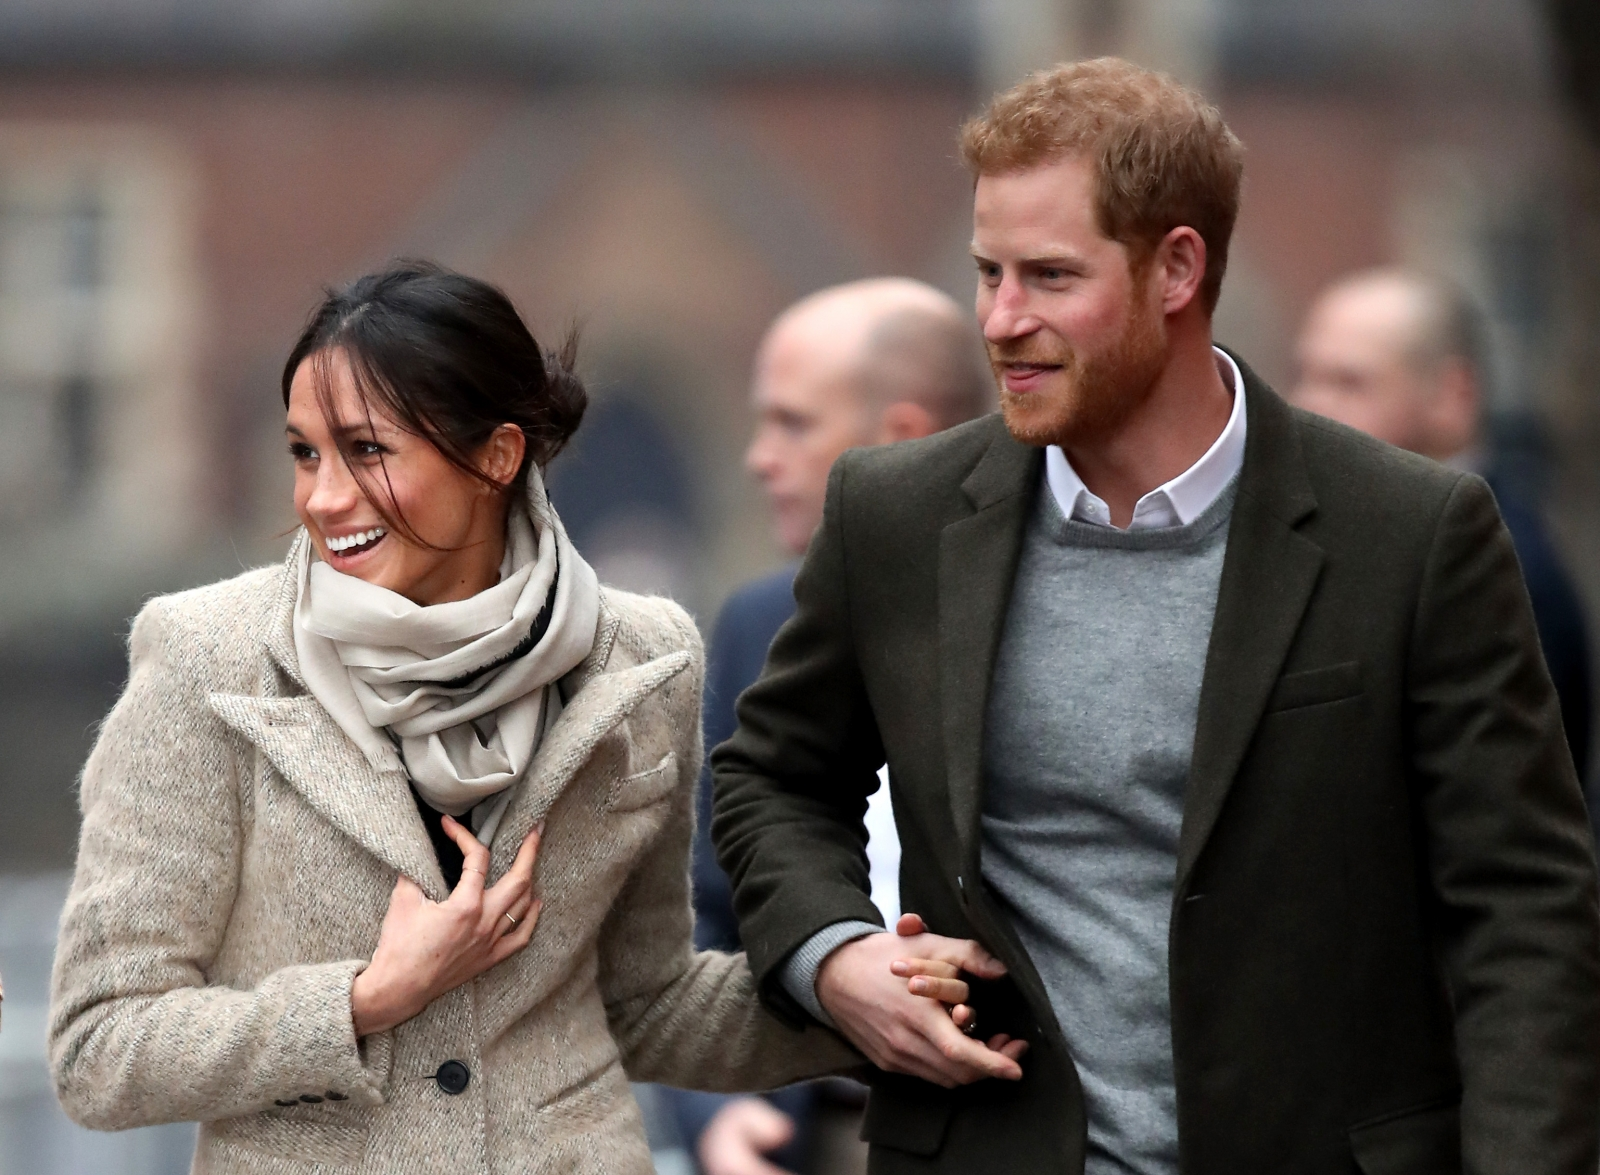 Govt plans to extend pub hours for royal wedding